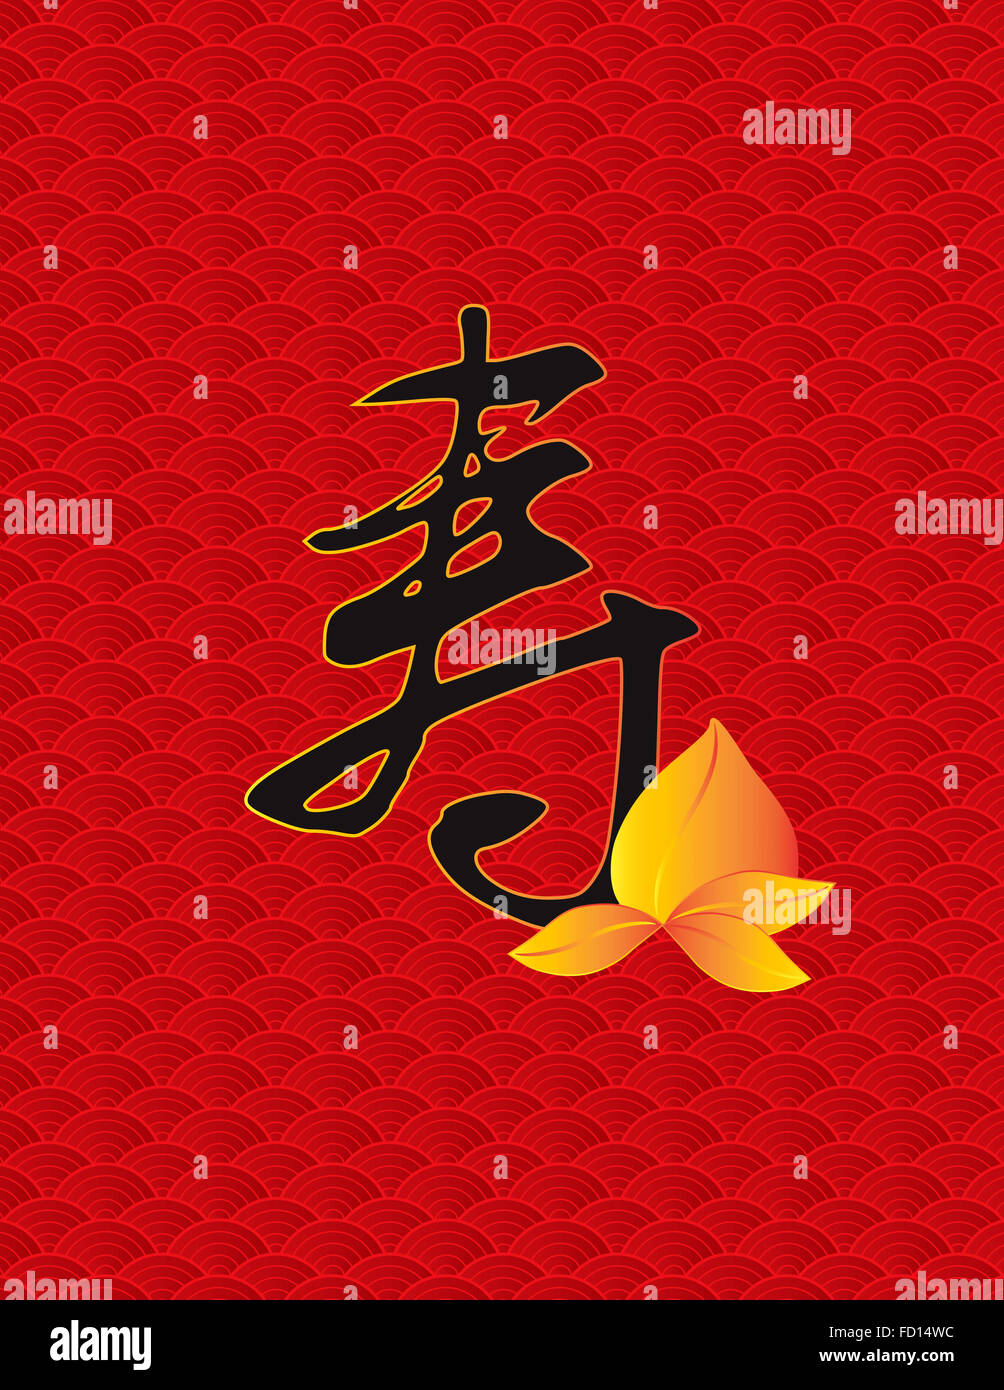 Chinese Longevity Text Symbol Calligraphy With Golden Peach On Red